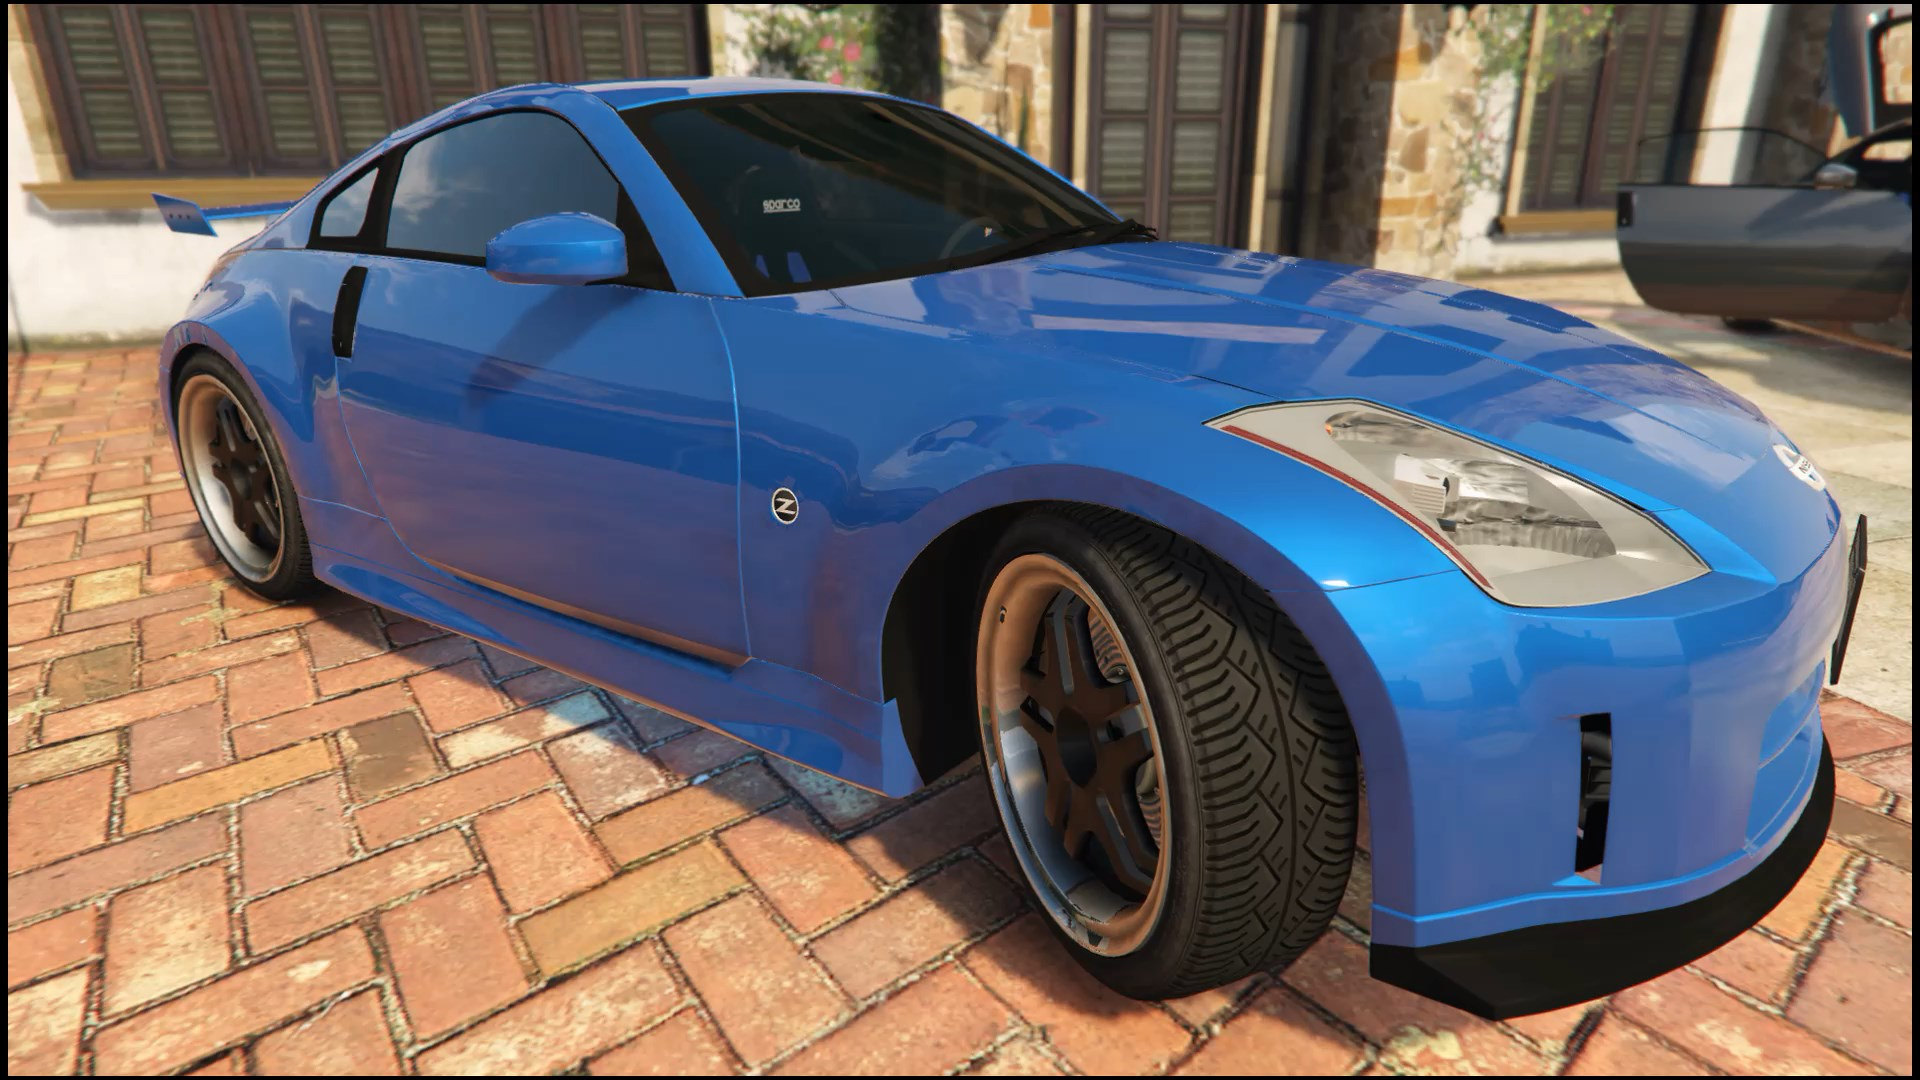 nissan 350z (clean & with livery) - gta5-mods